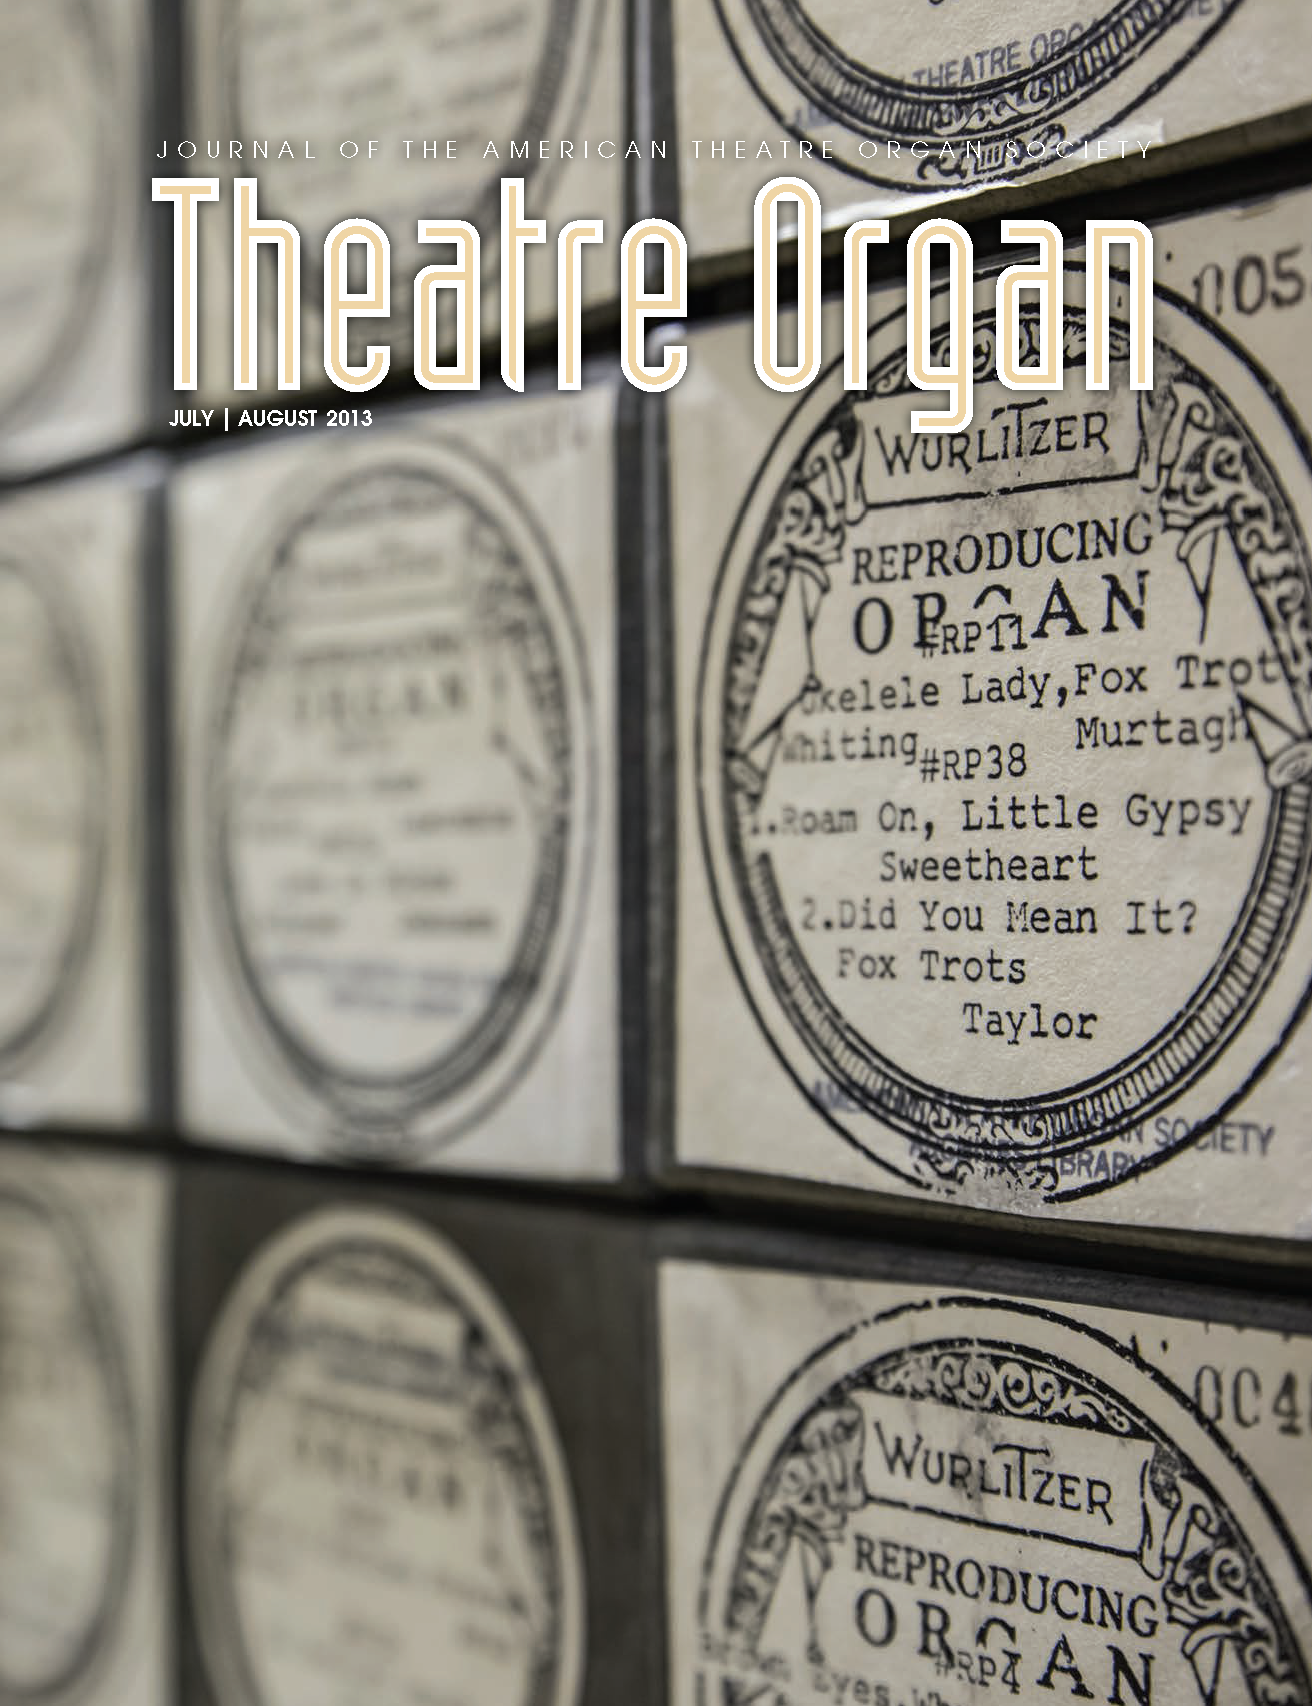 Theatre Organ, July - August 2013, Volume 55, Number 4